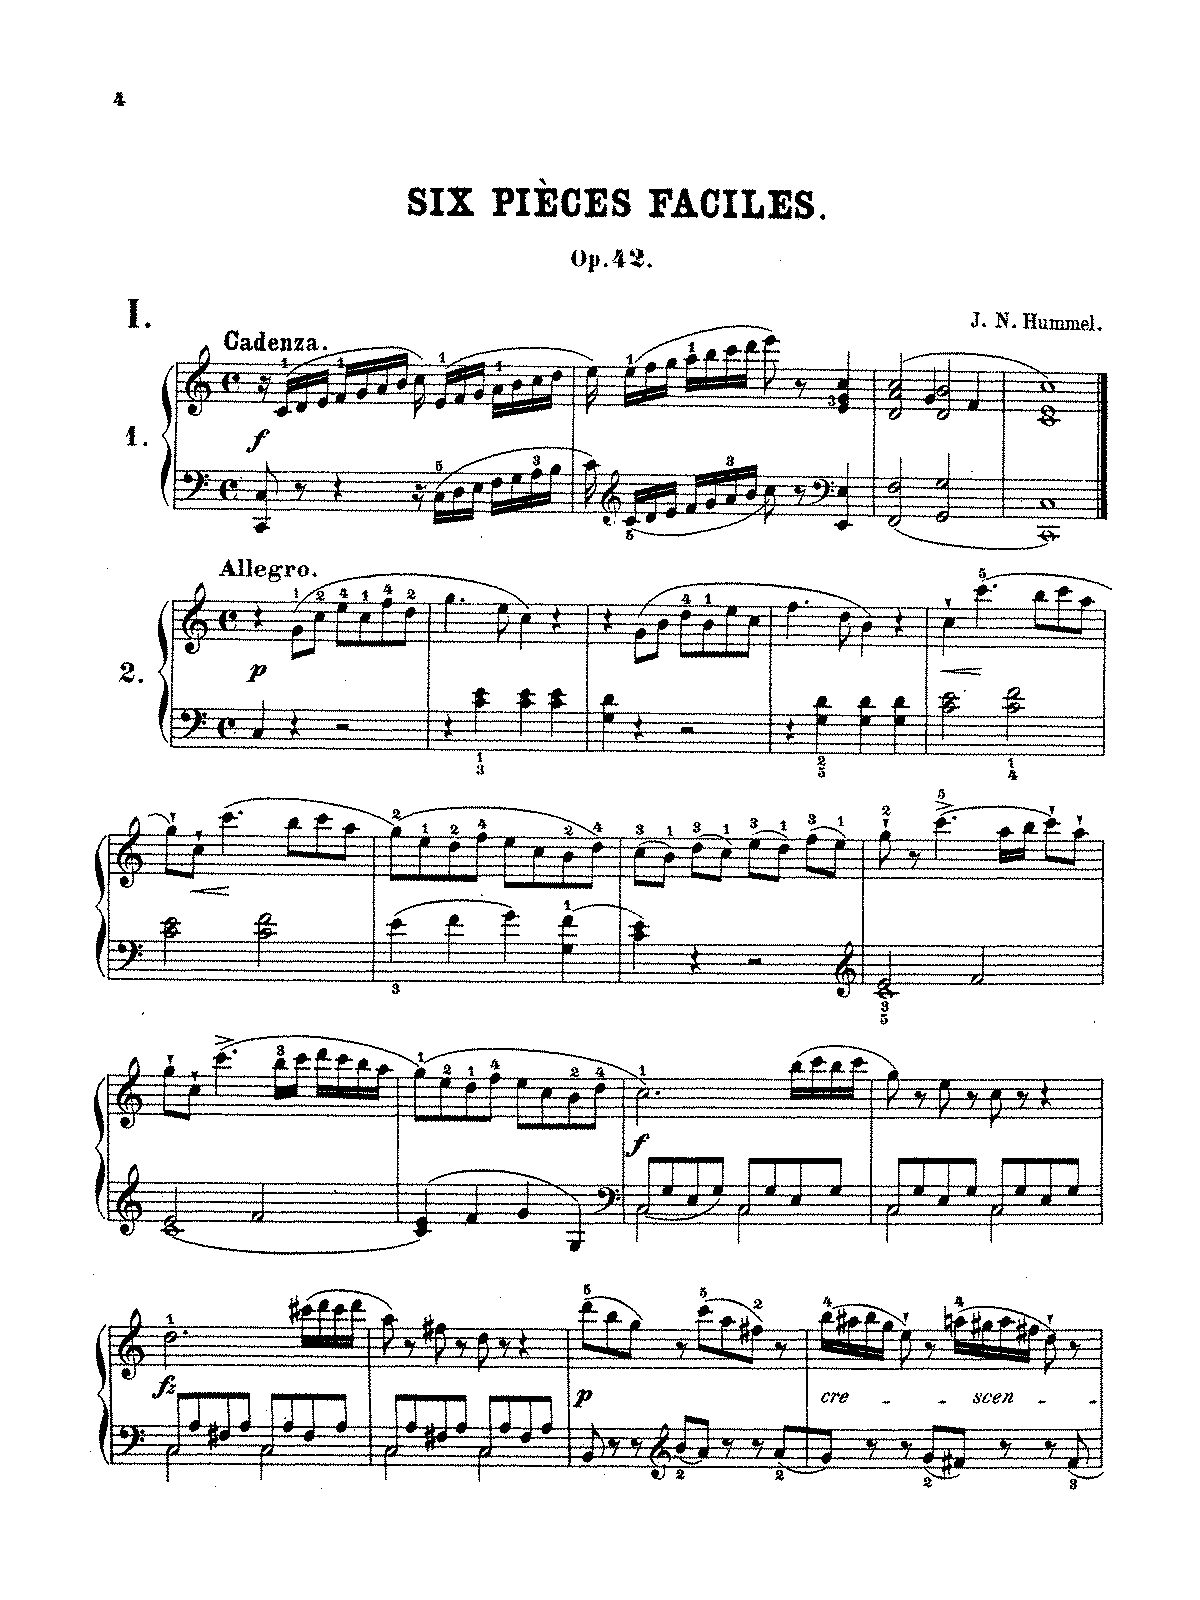 Hummel - 6 Easy Pieces, Op.42.pdf